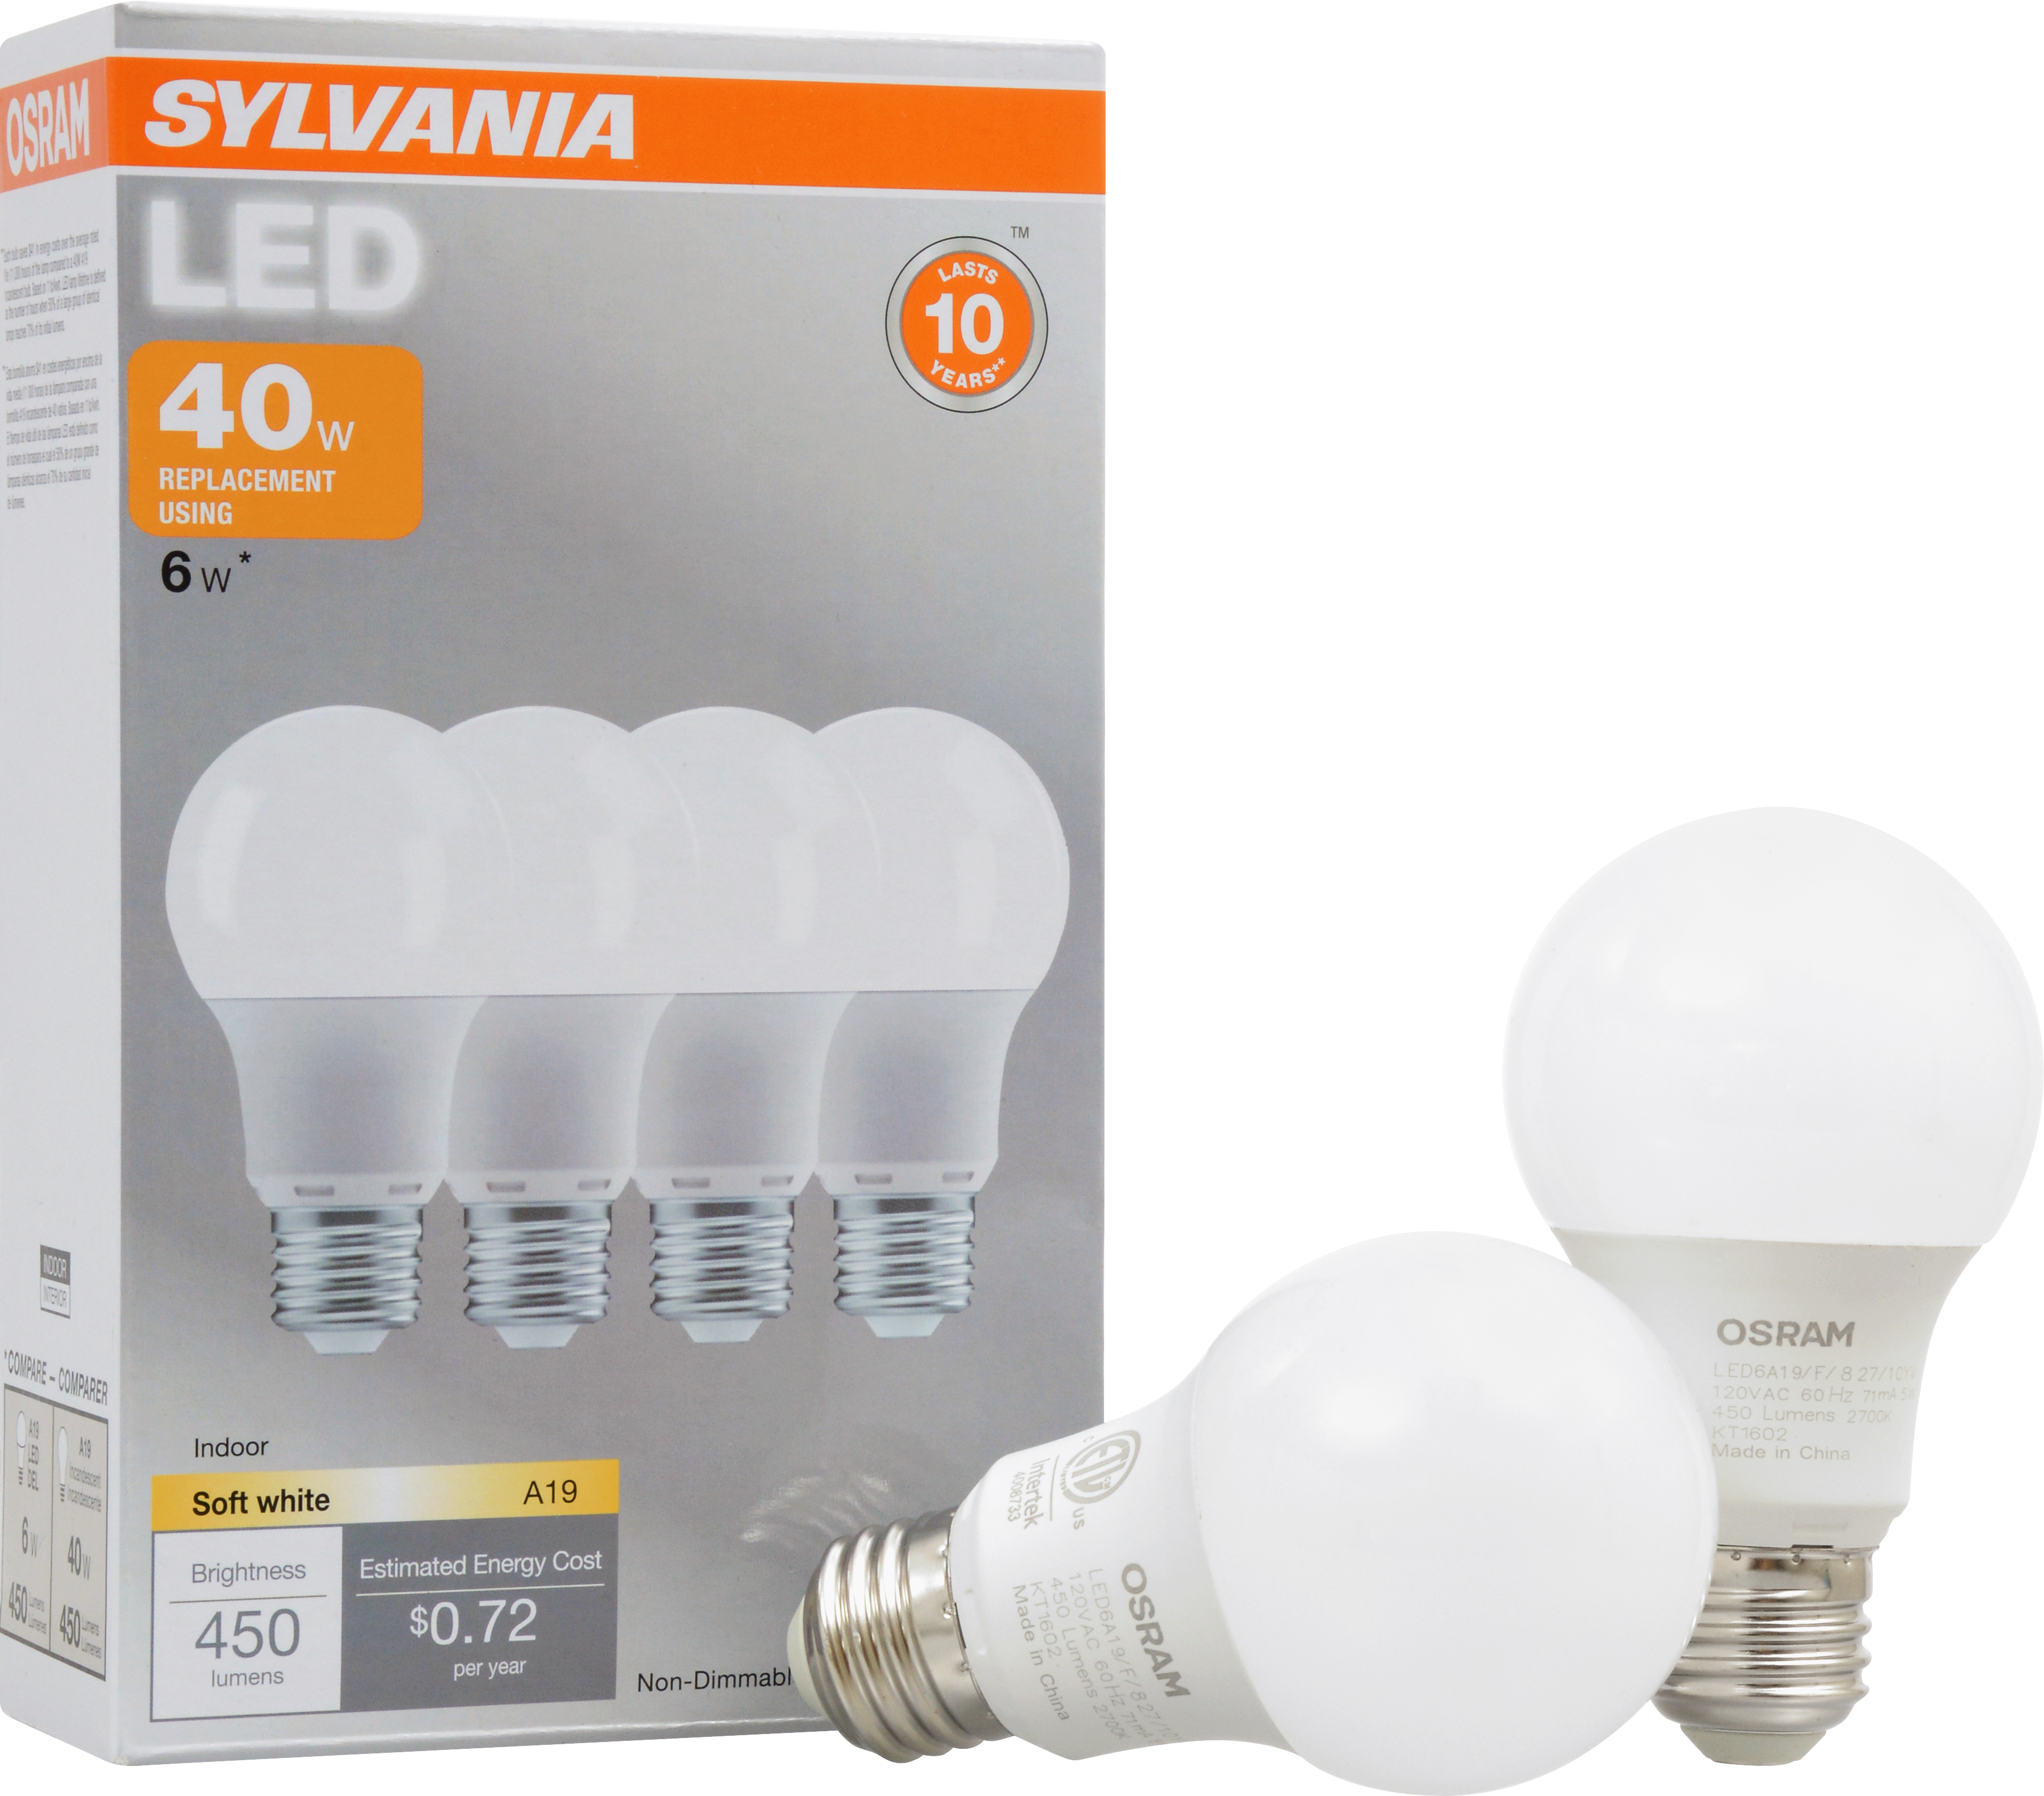 sylvania led light bulbs 6w 40w equivalent soft white 4